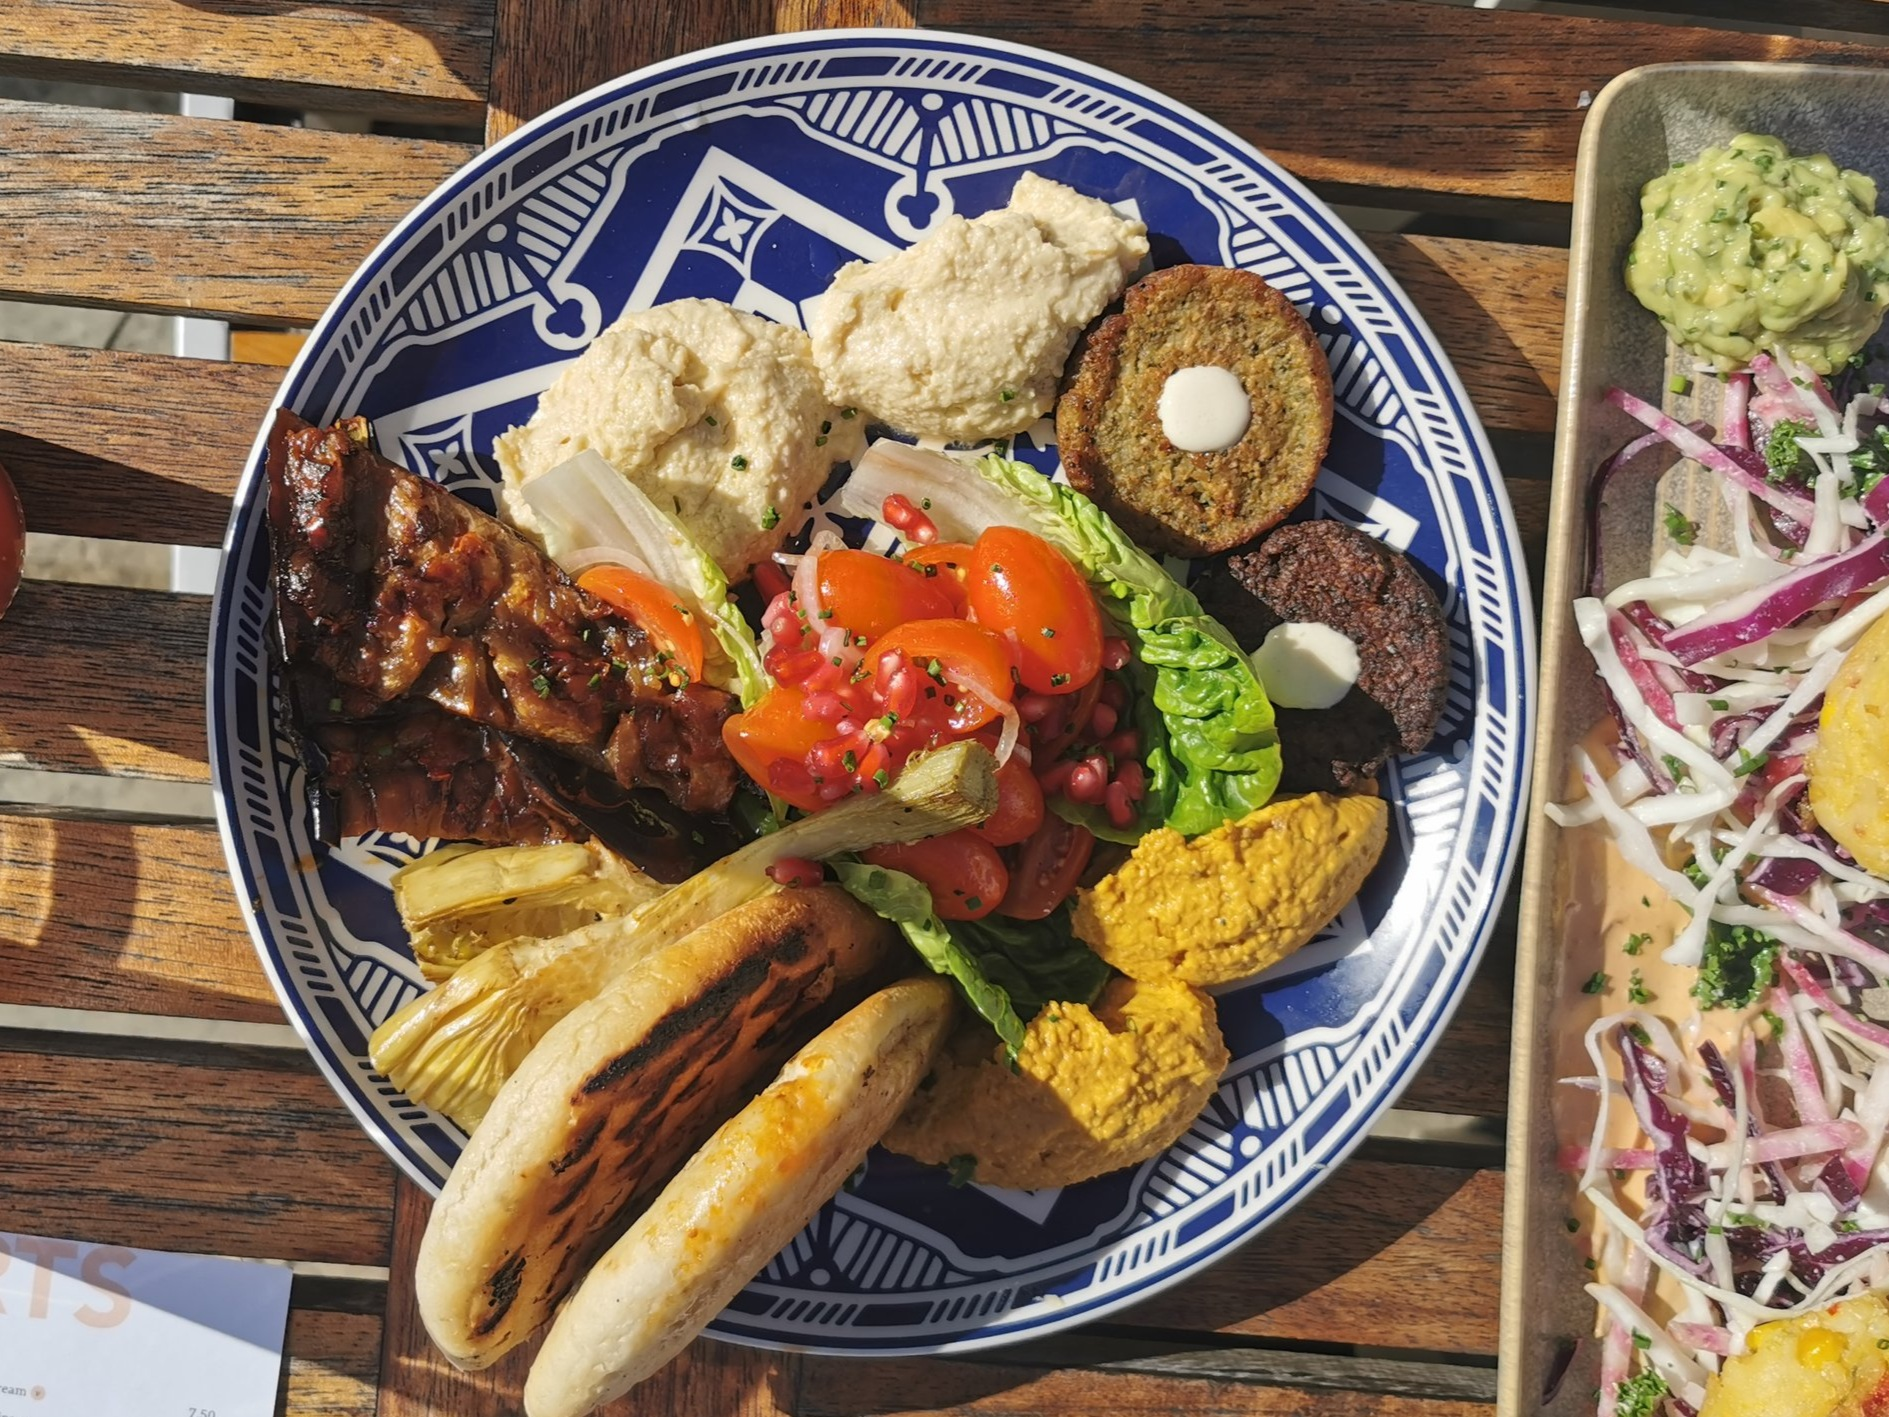 Vegan Glazed Moroccan Mezze Platter at The White Bear in Ruislip